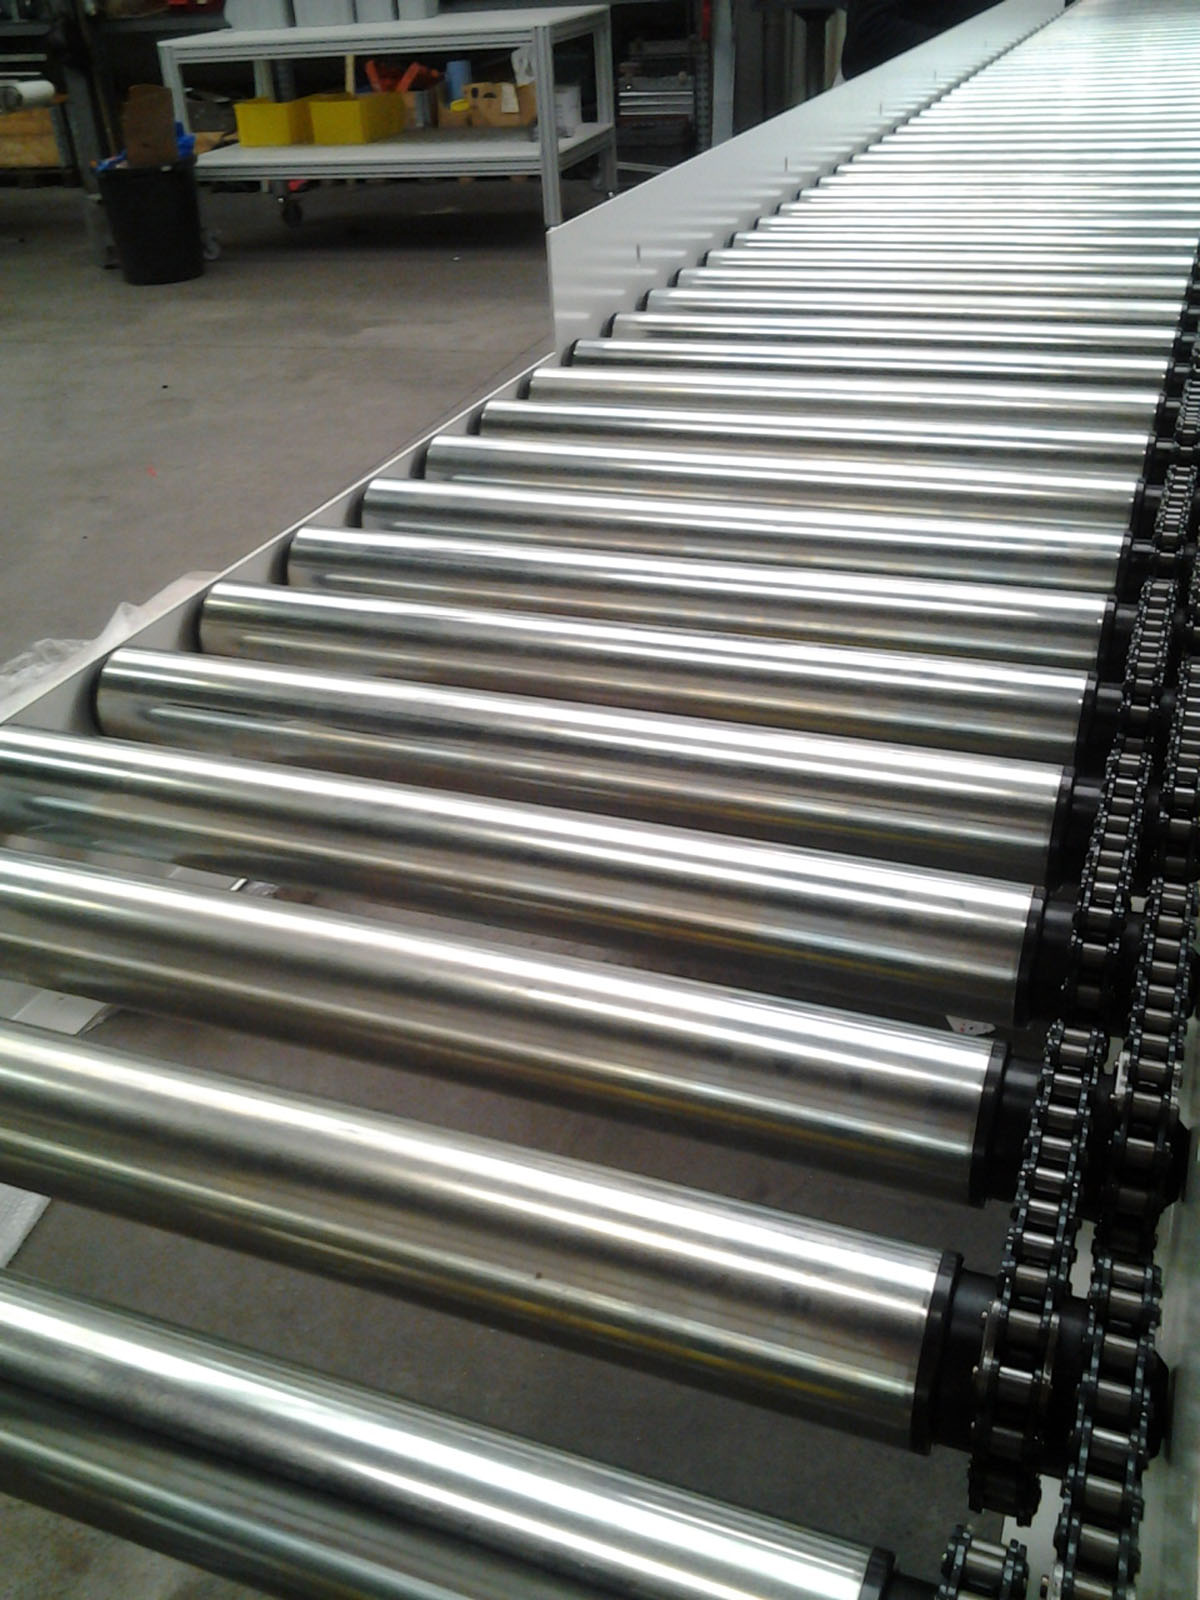 Chain Driven Roller Conveyors Roller Conveyors Easy